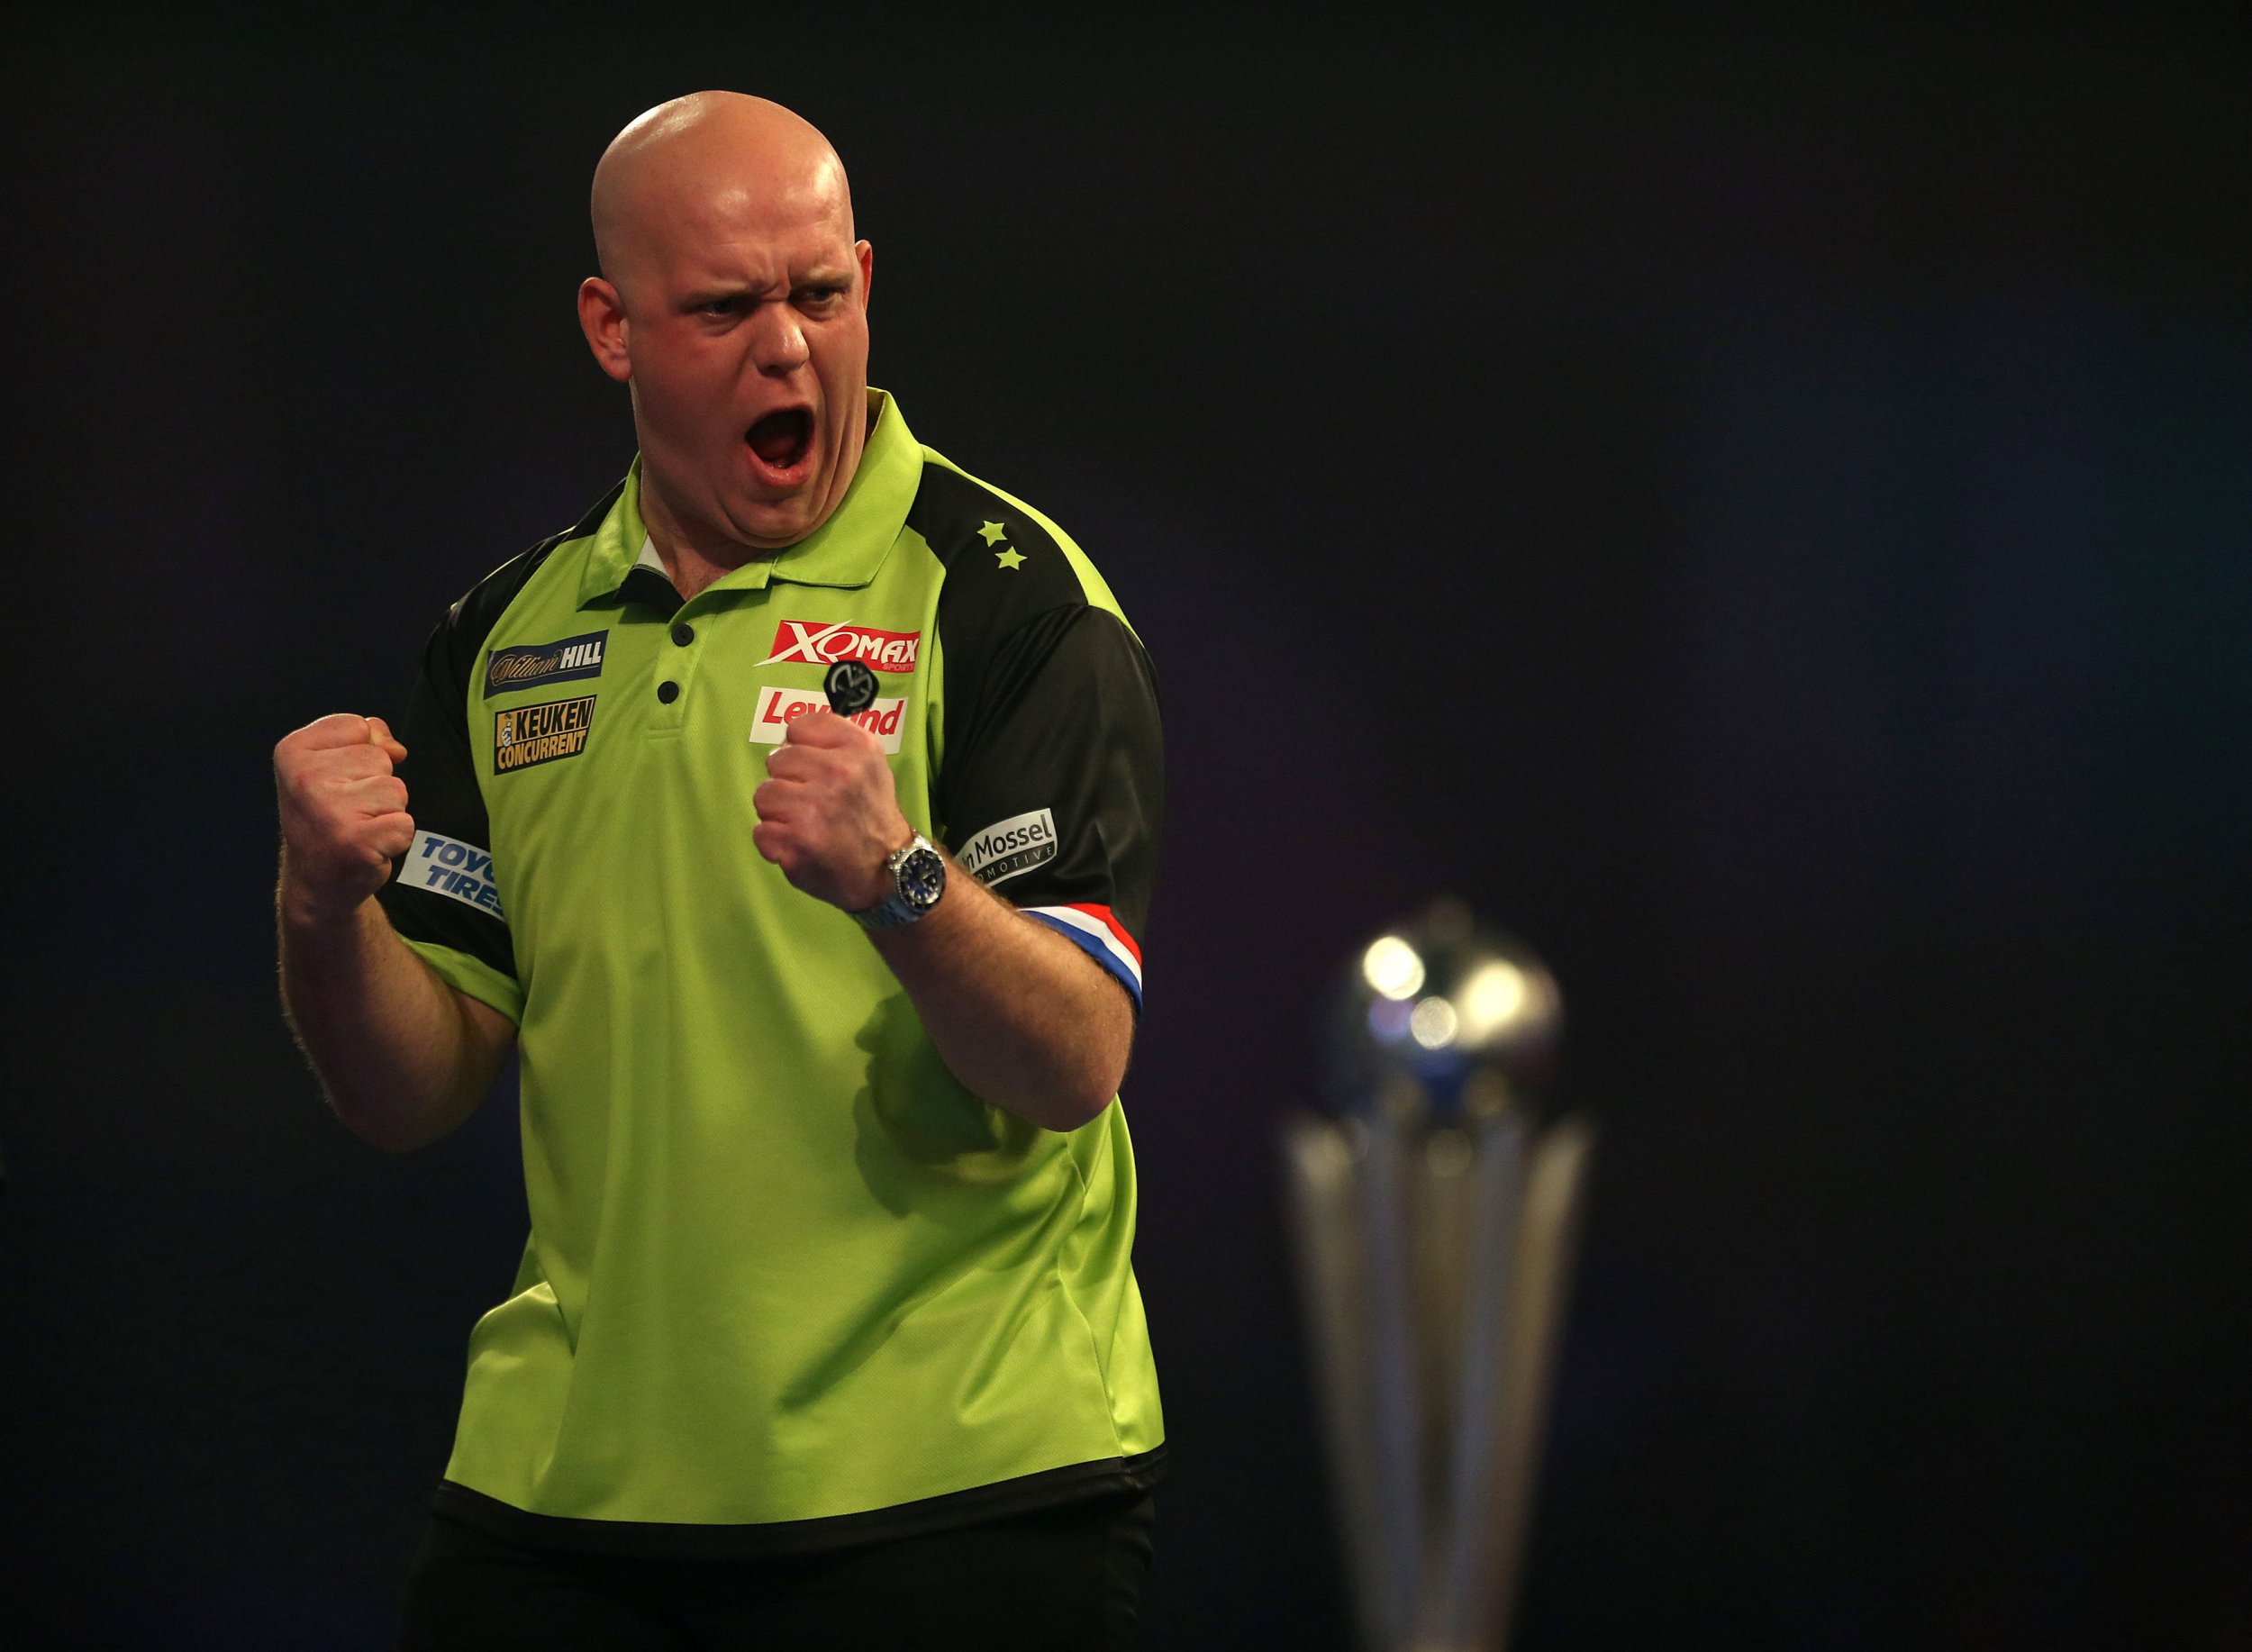 Michael van Gerwen wins the 2019 PDC World Championship after demolishing Michael Smith